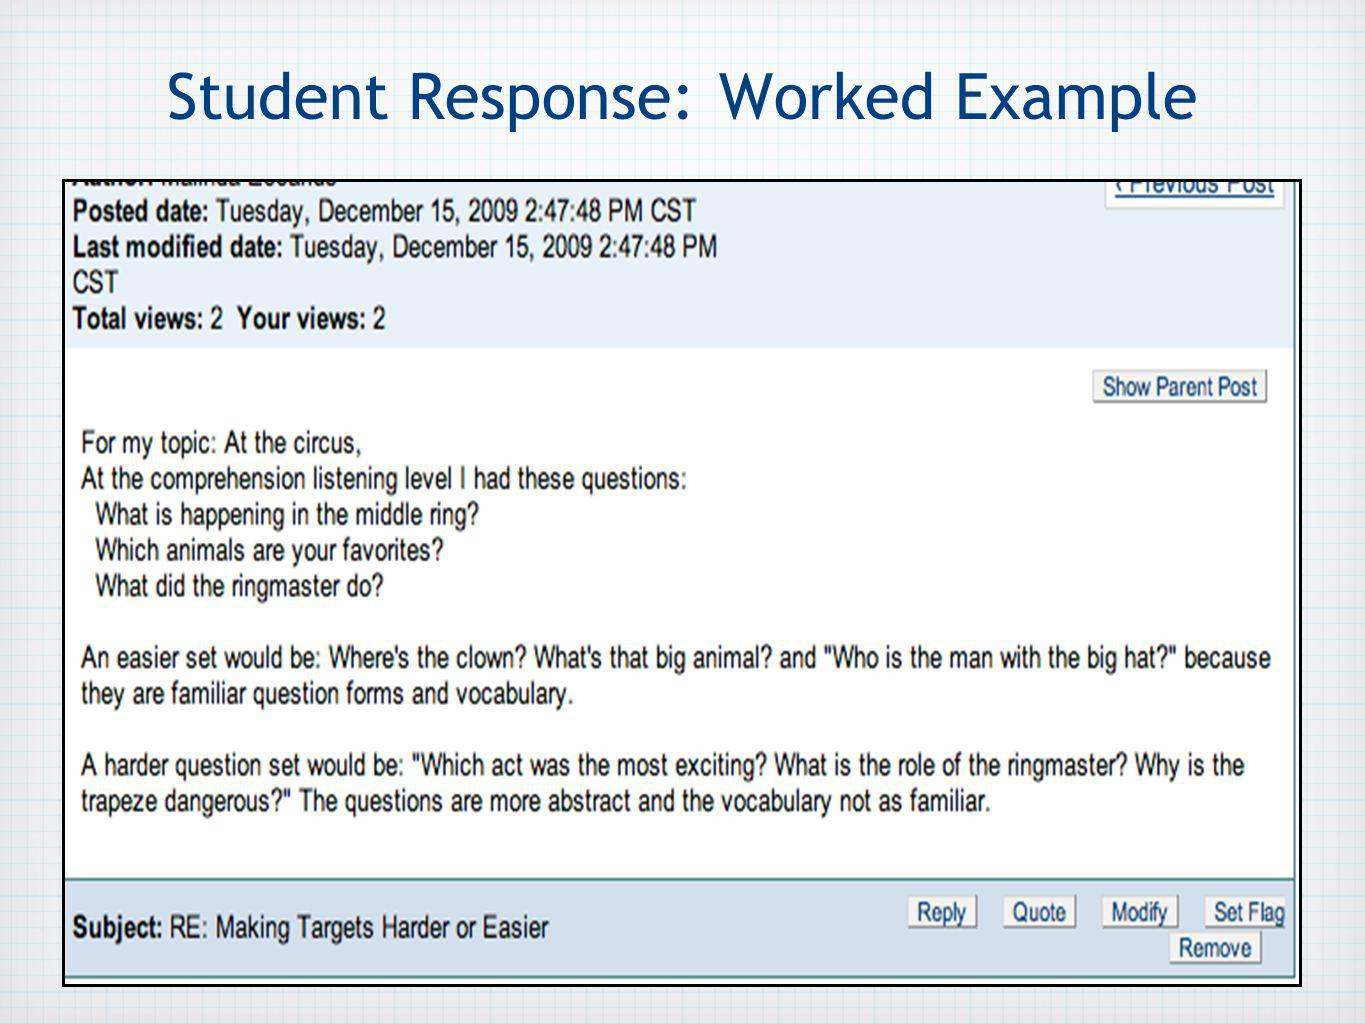 Student Response: Worked Example